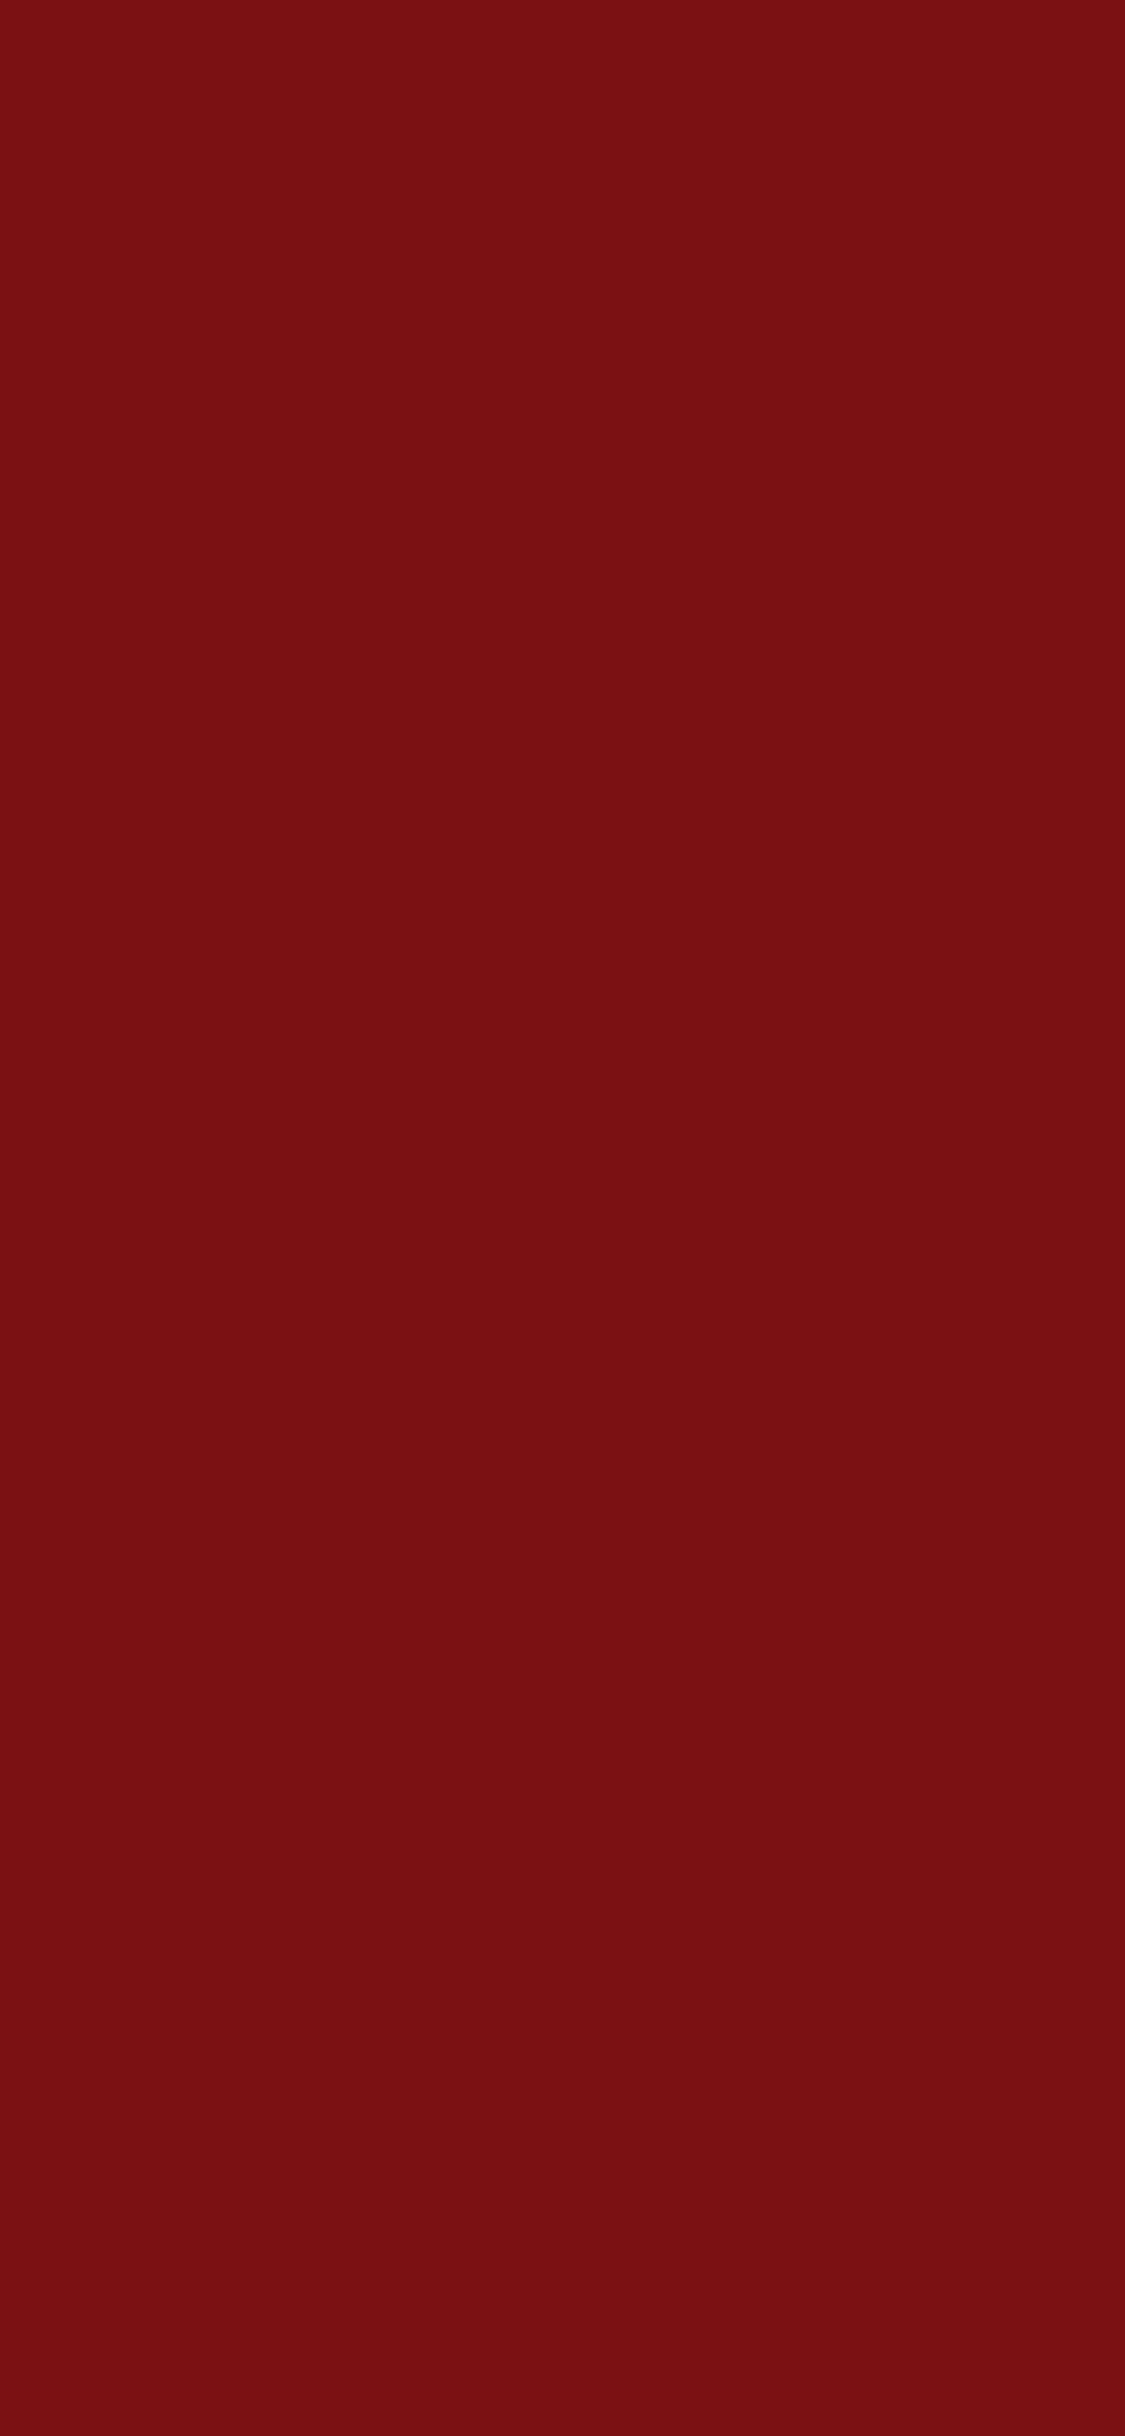 1125x2436 UP Maroon Solid Color Background